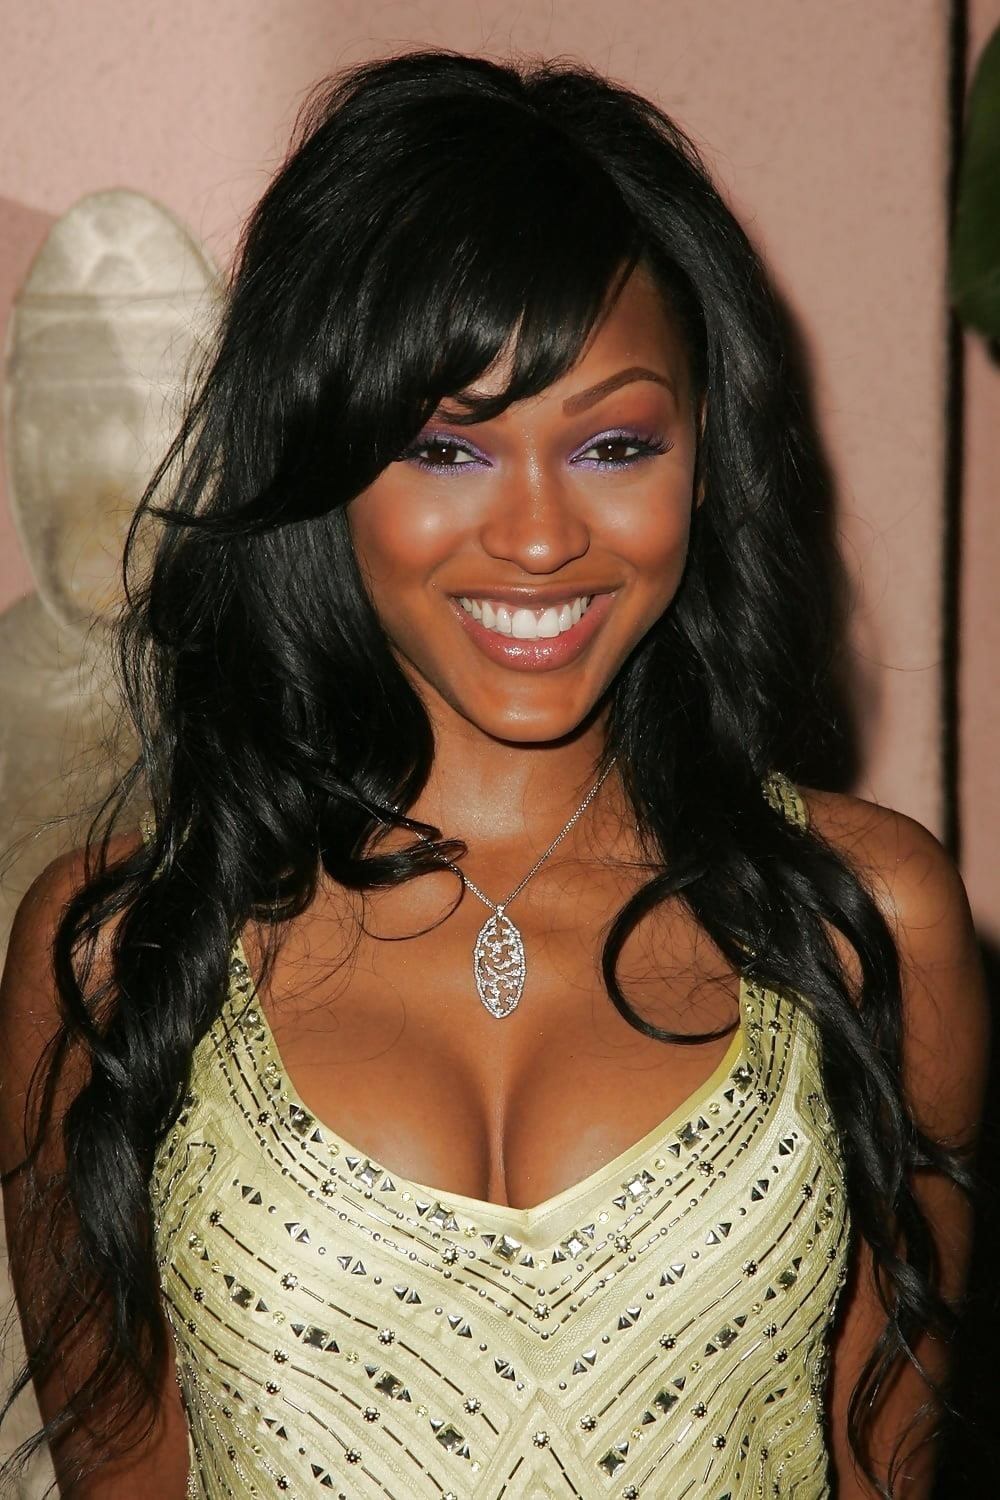 Meagan good nude pictures-5935